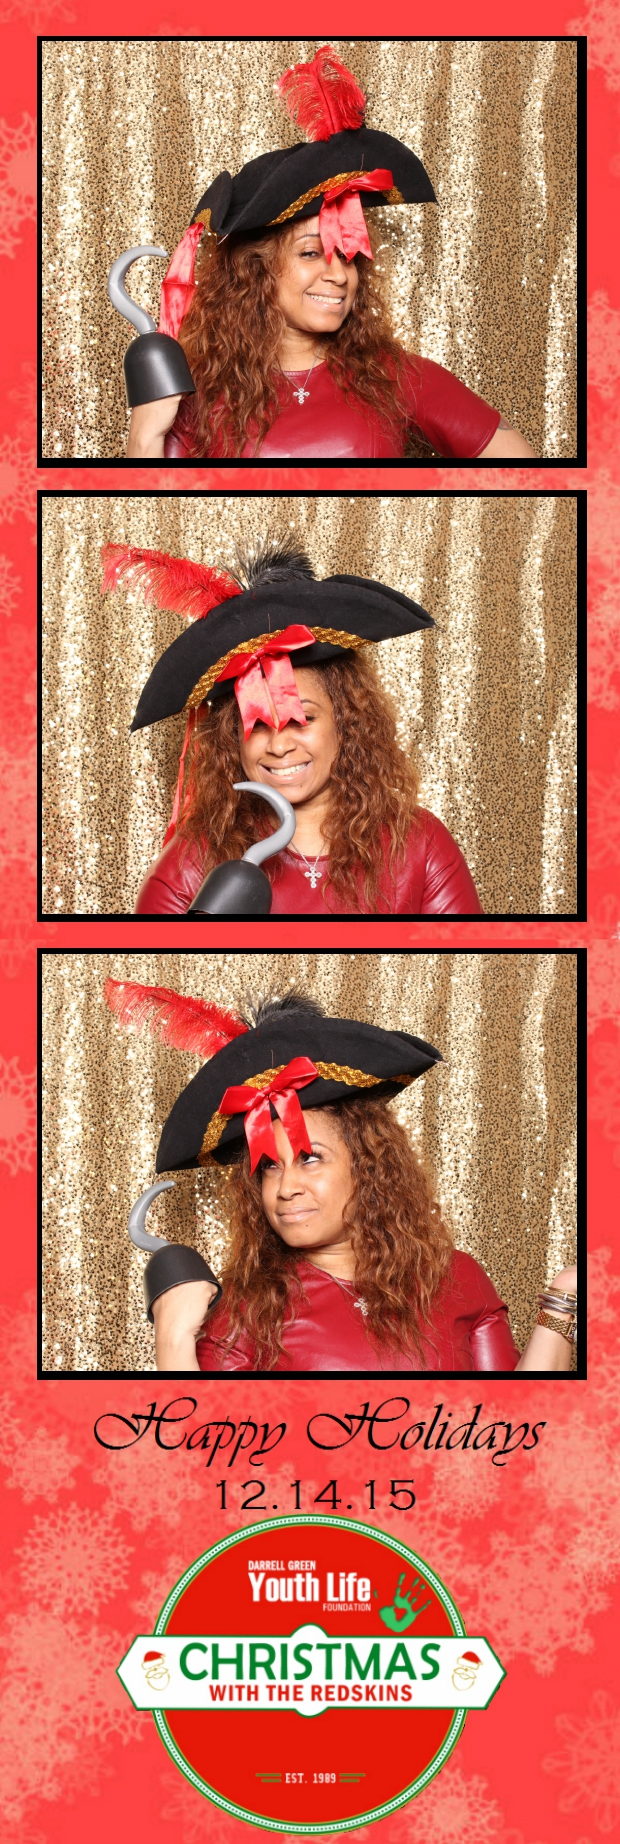 Guest House Events Photo Booth DGYLF Strips (65).jpg